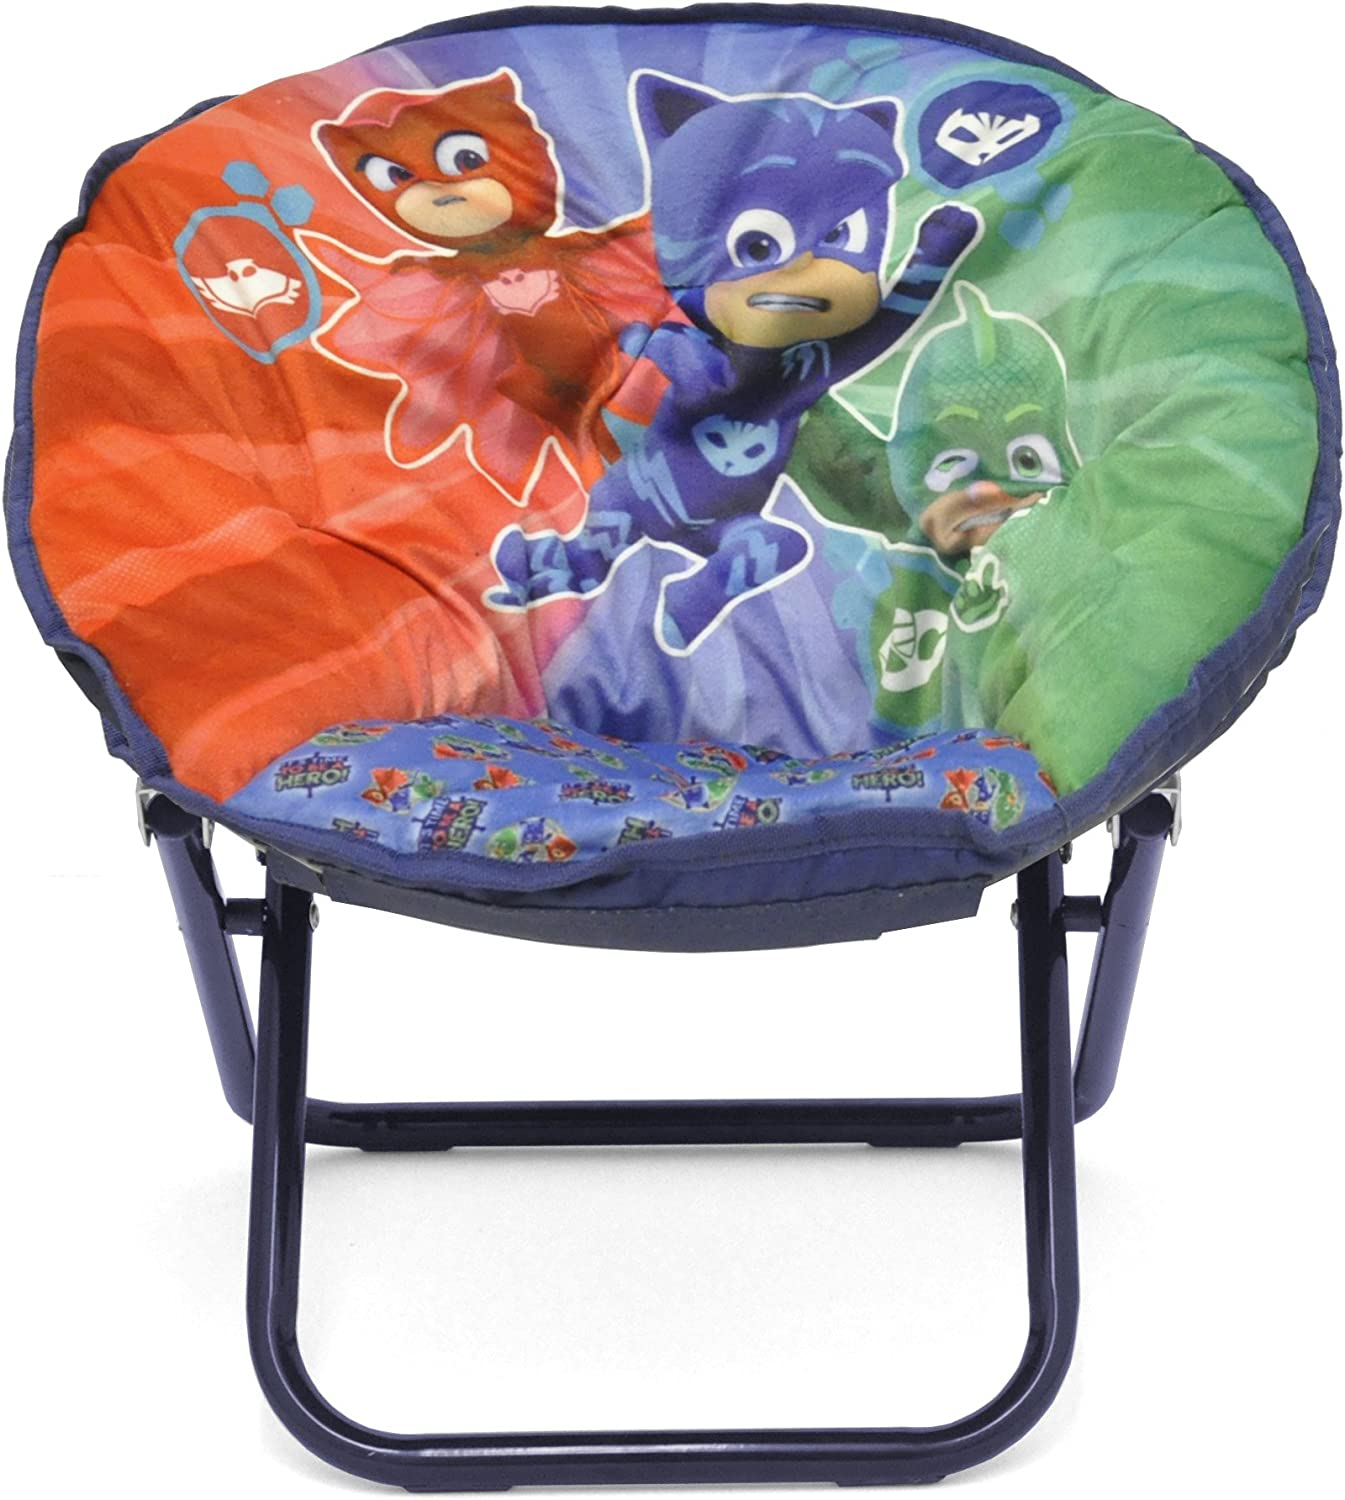 """Idea Nuova Nickelodeon PJ Mask Toddler 19"""" Folding Saucer Chair with Cushion, Ages 3+"""